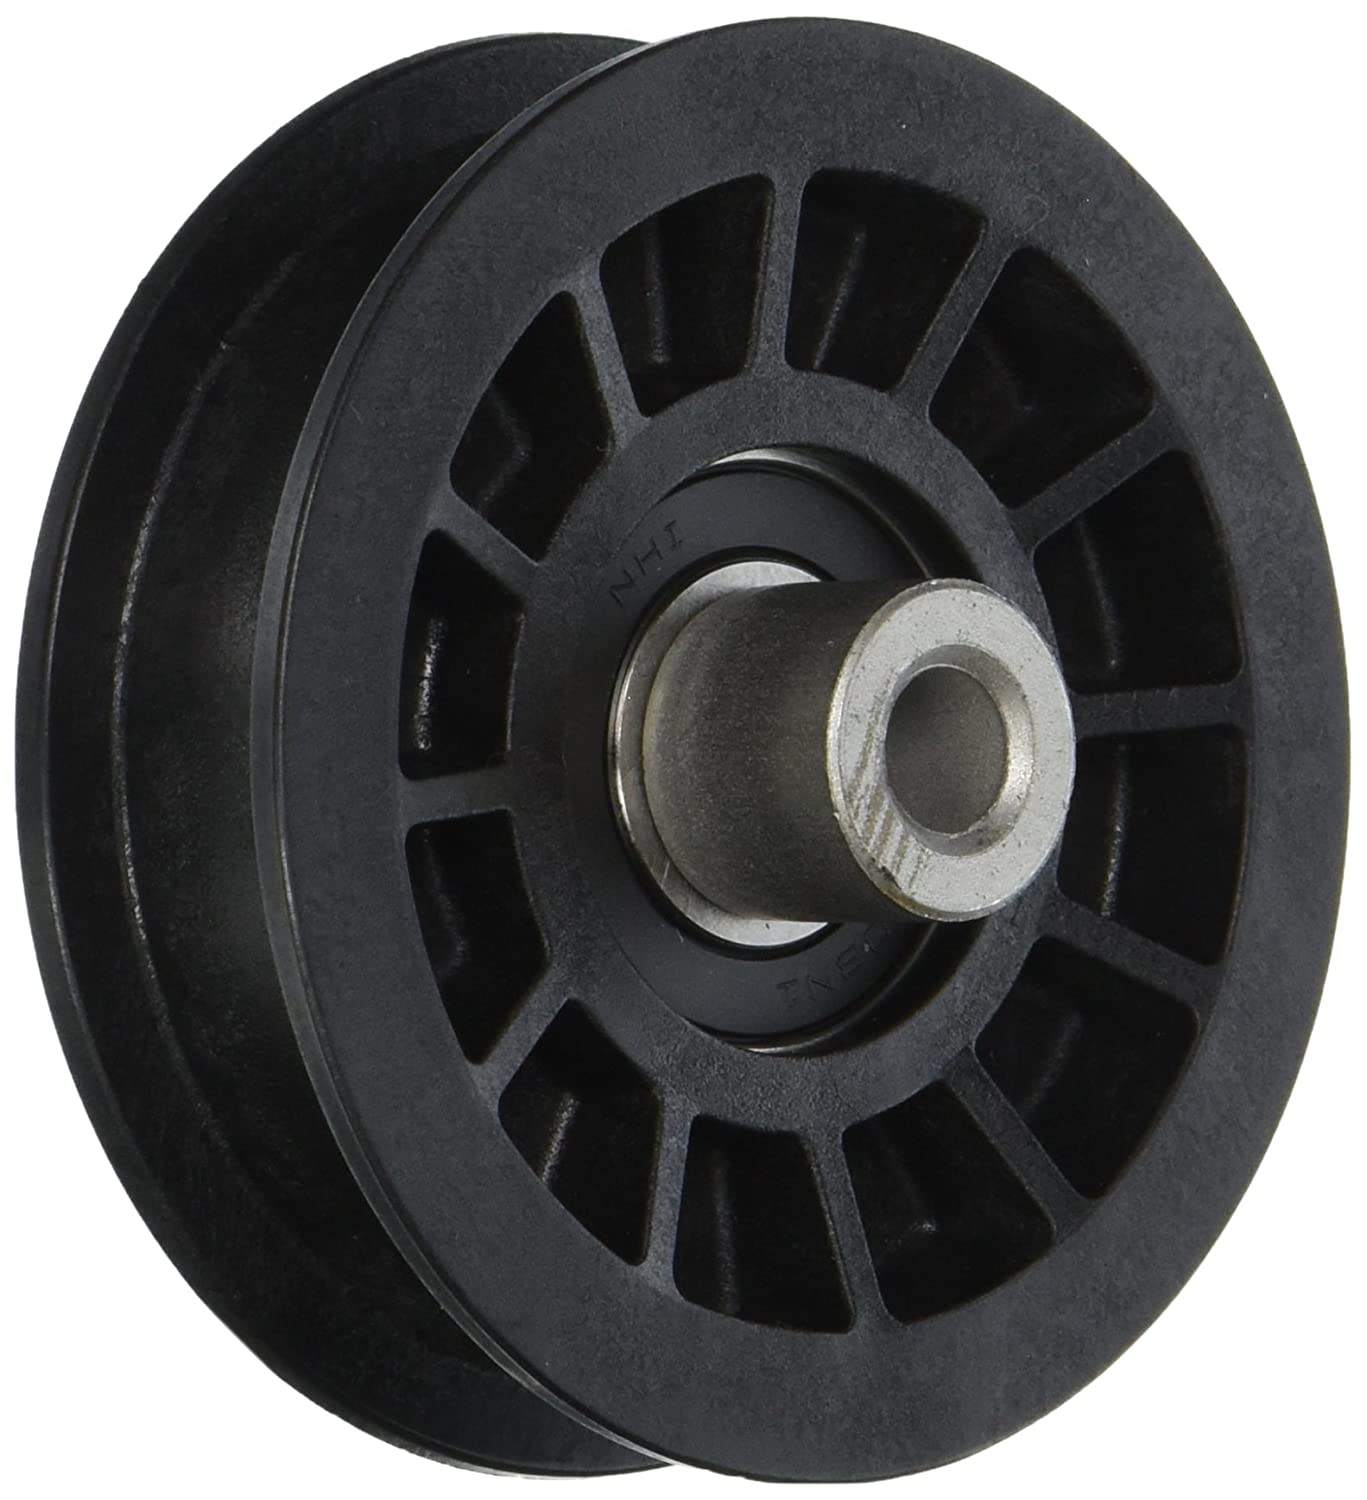 MaxPower 13179 Flat Idler Pulley Replaces Poulan/Husqvarna/Craftsman 194327, 532194327